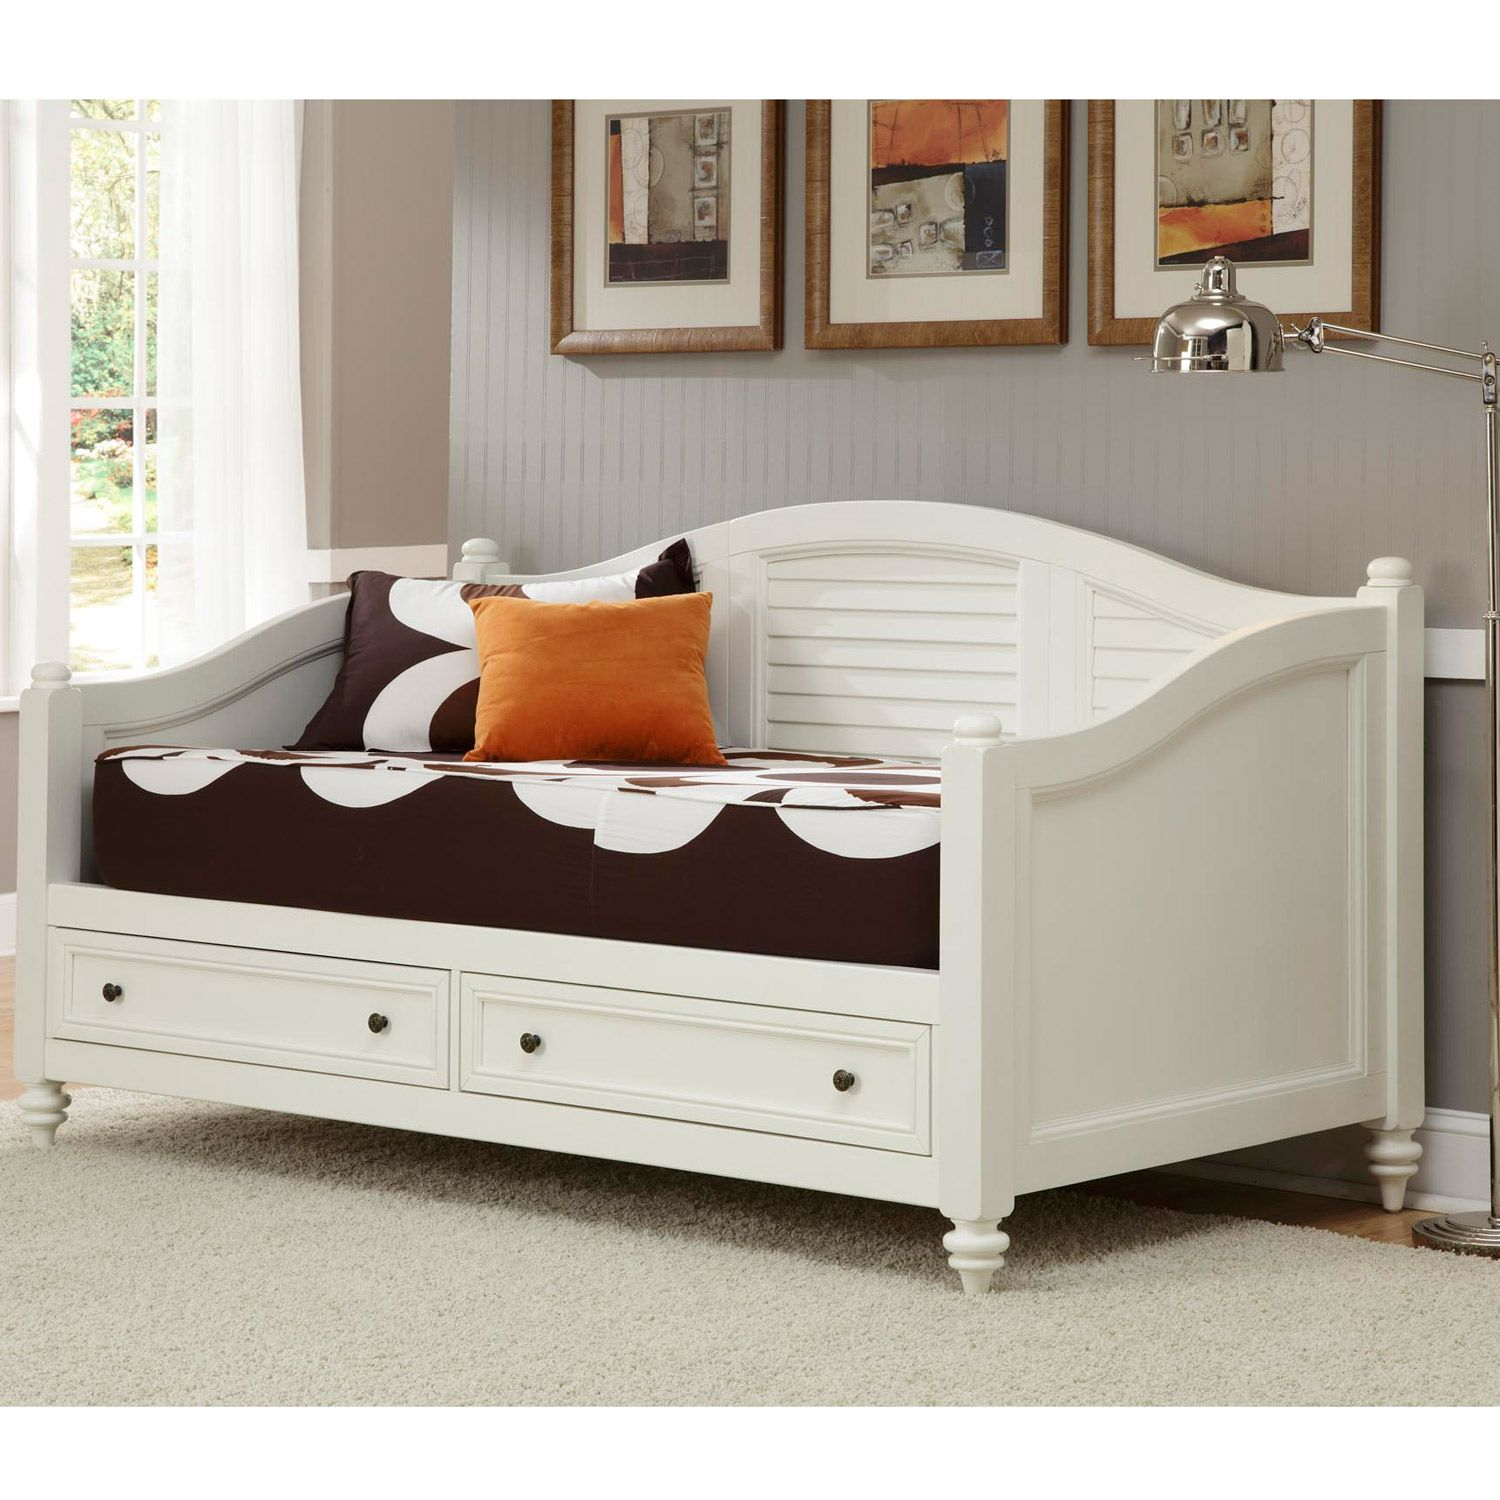 A Day Bed Part - 28: Bermuda Brushed White Finish Twin-size DayBed - Overstock Shopping - Great  Deals On Beds